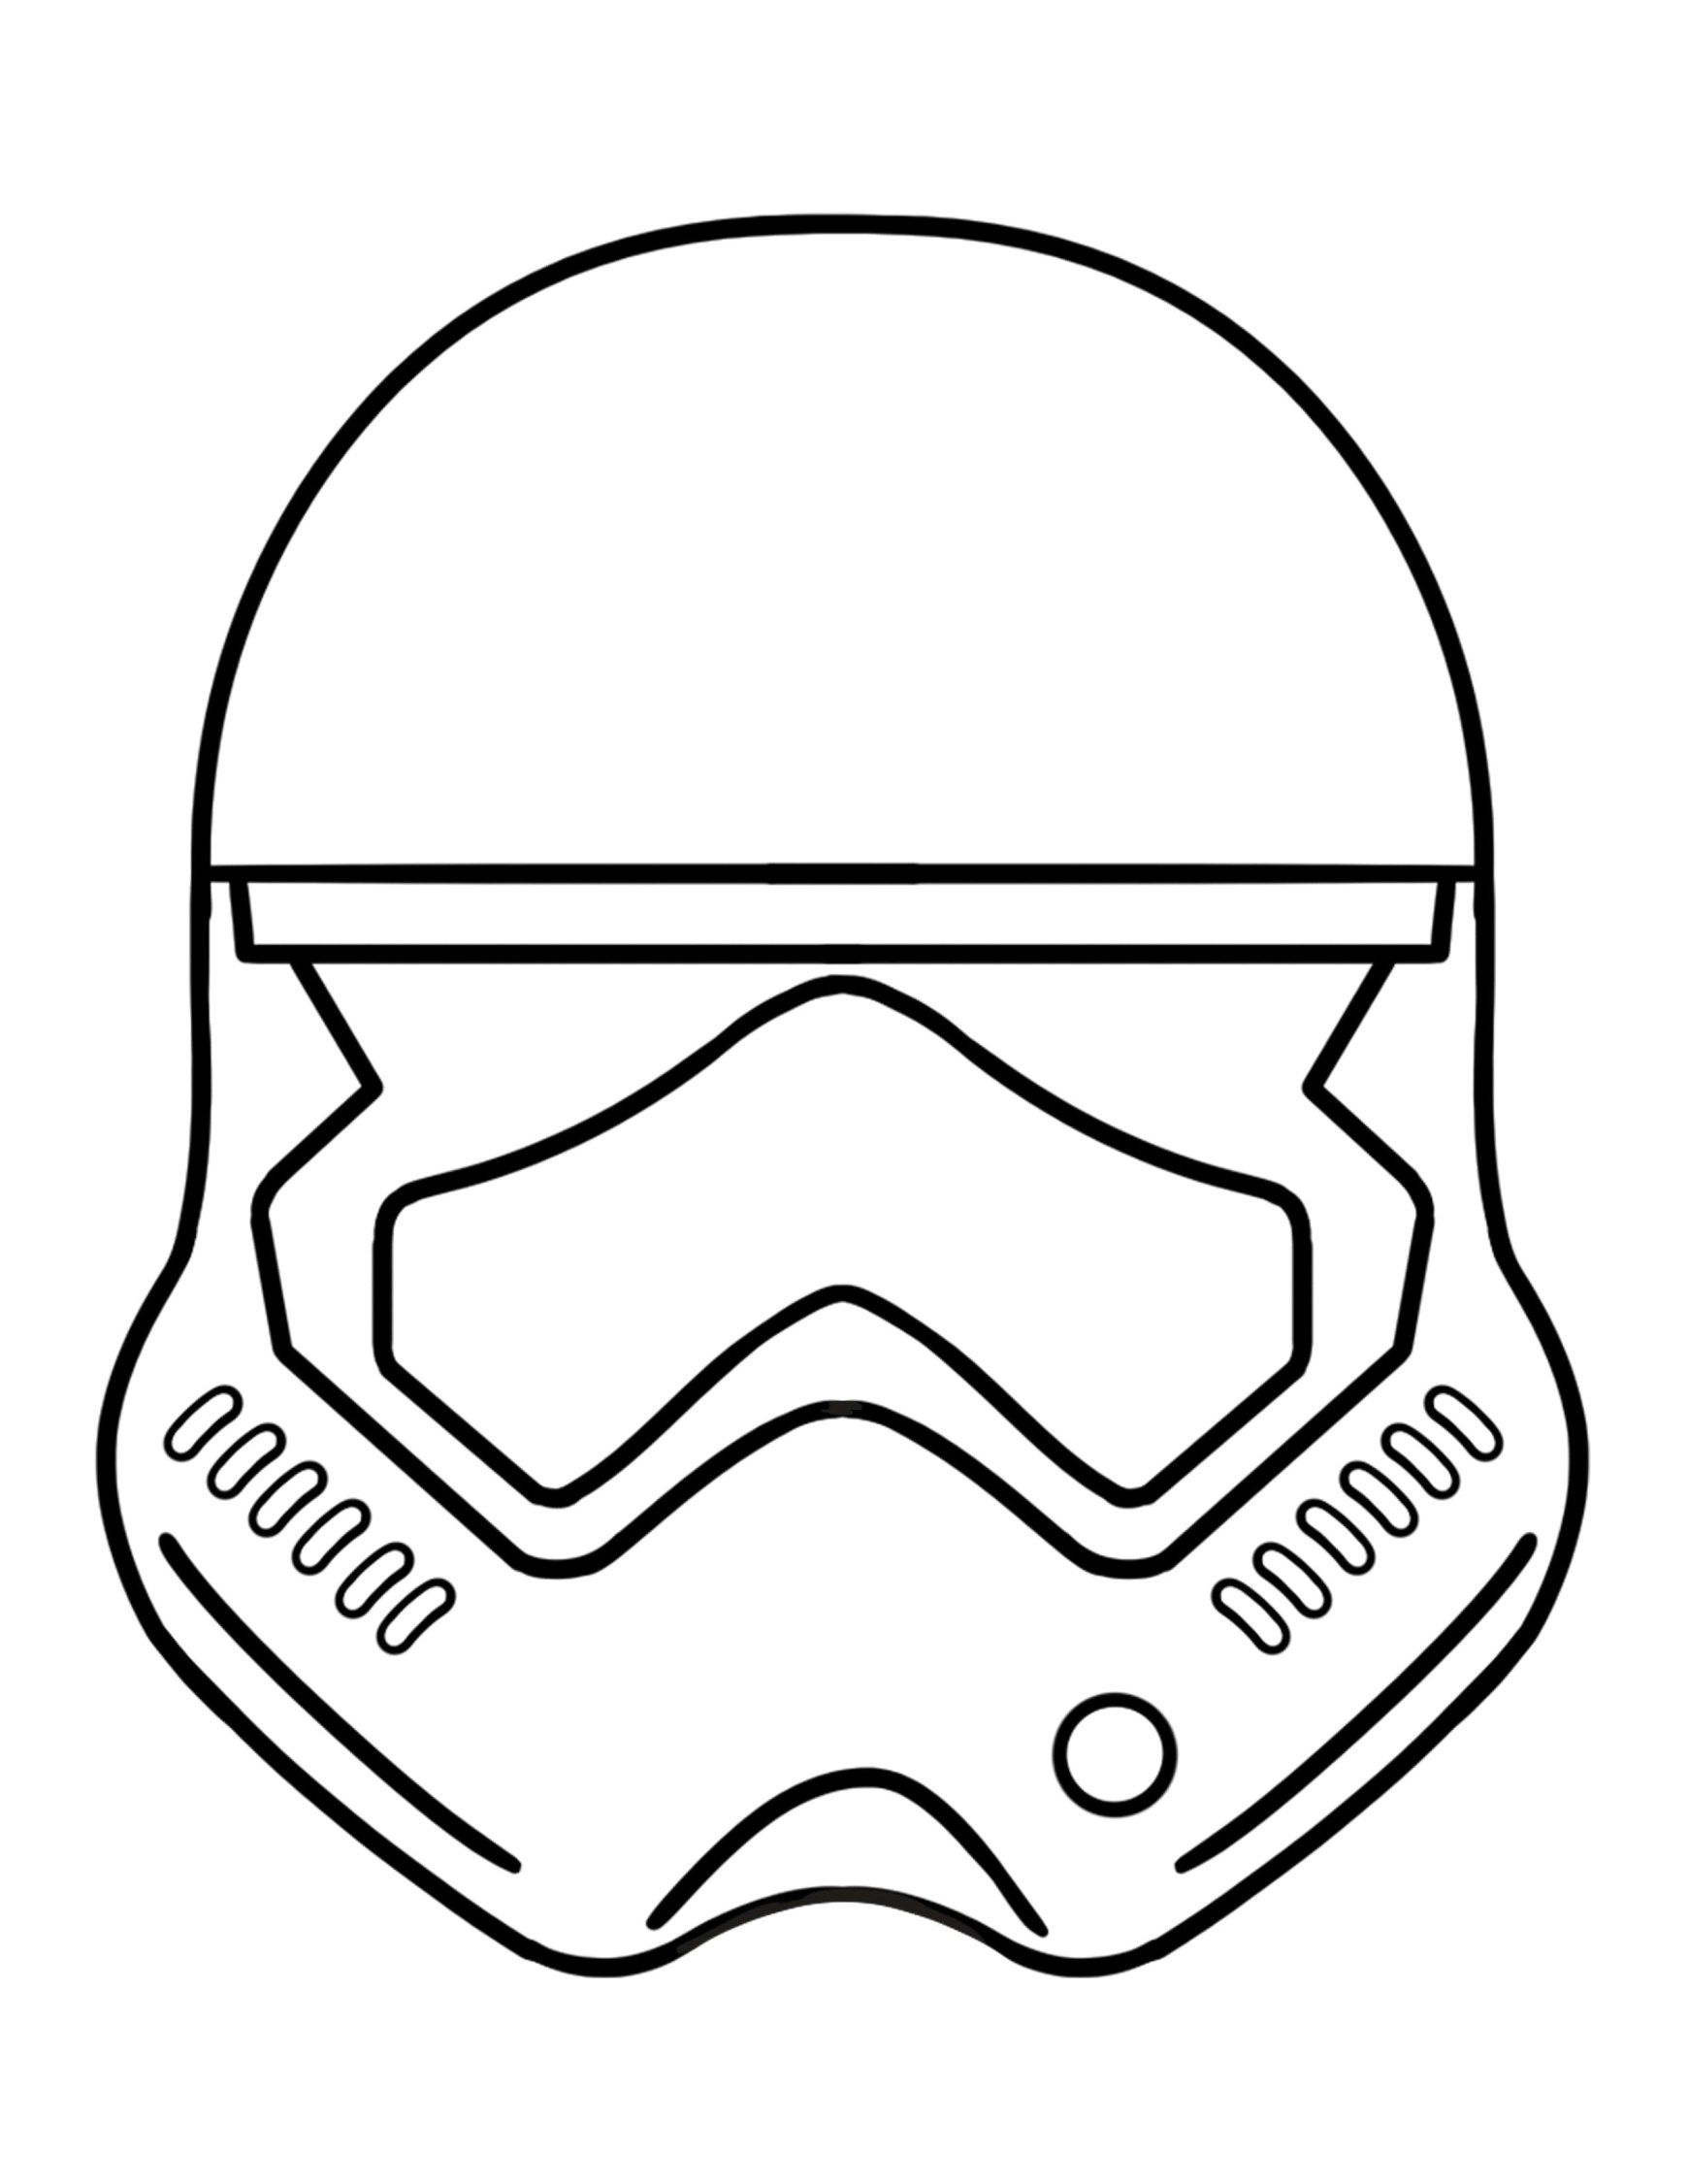 Mask Coloring Pages Best Darth Vader Mask Coloring Page